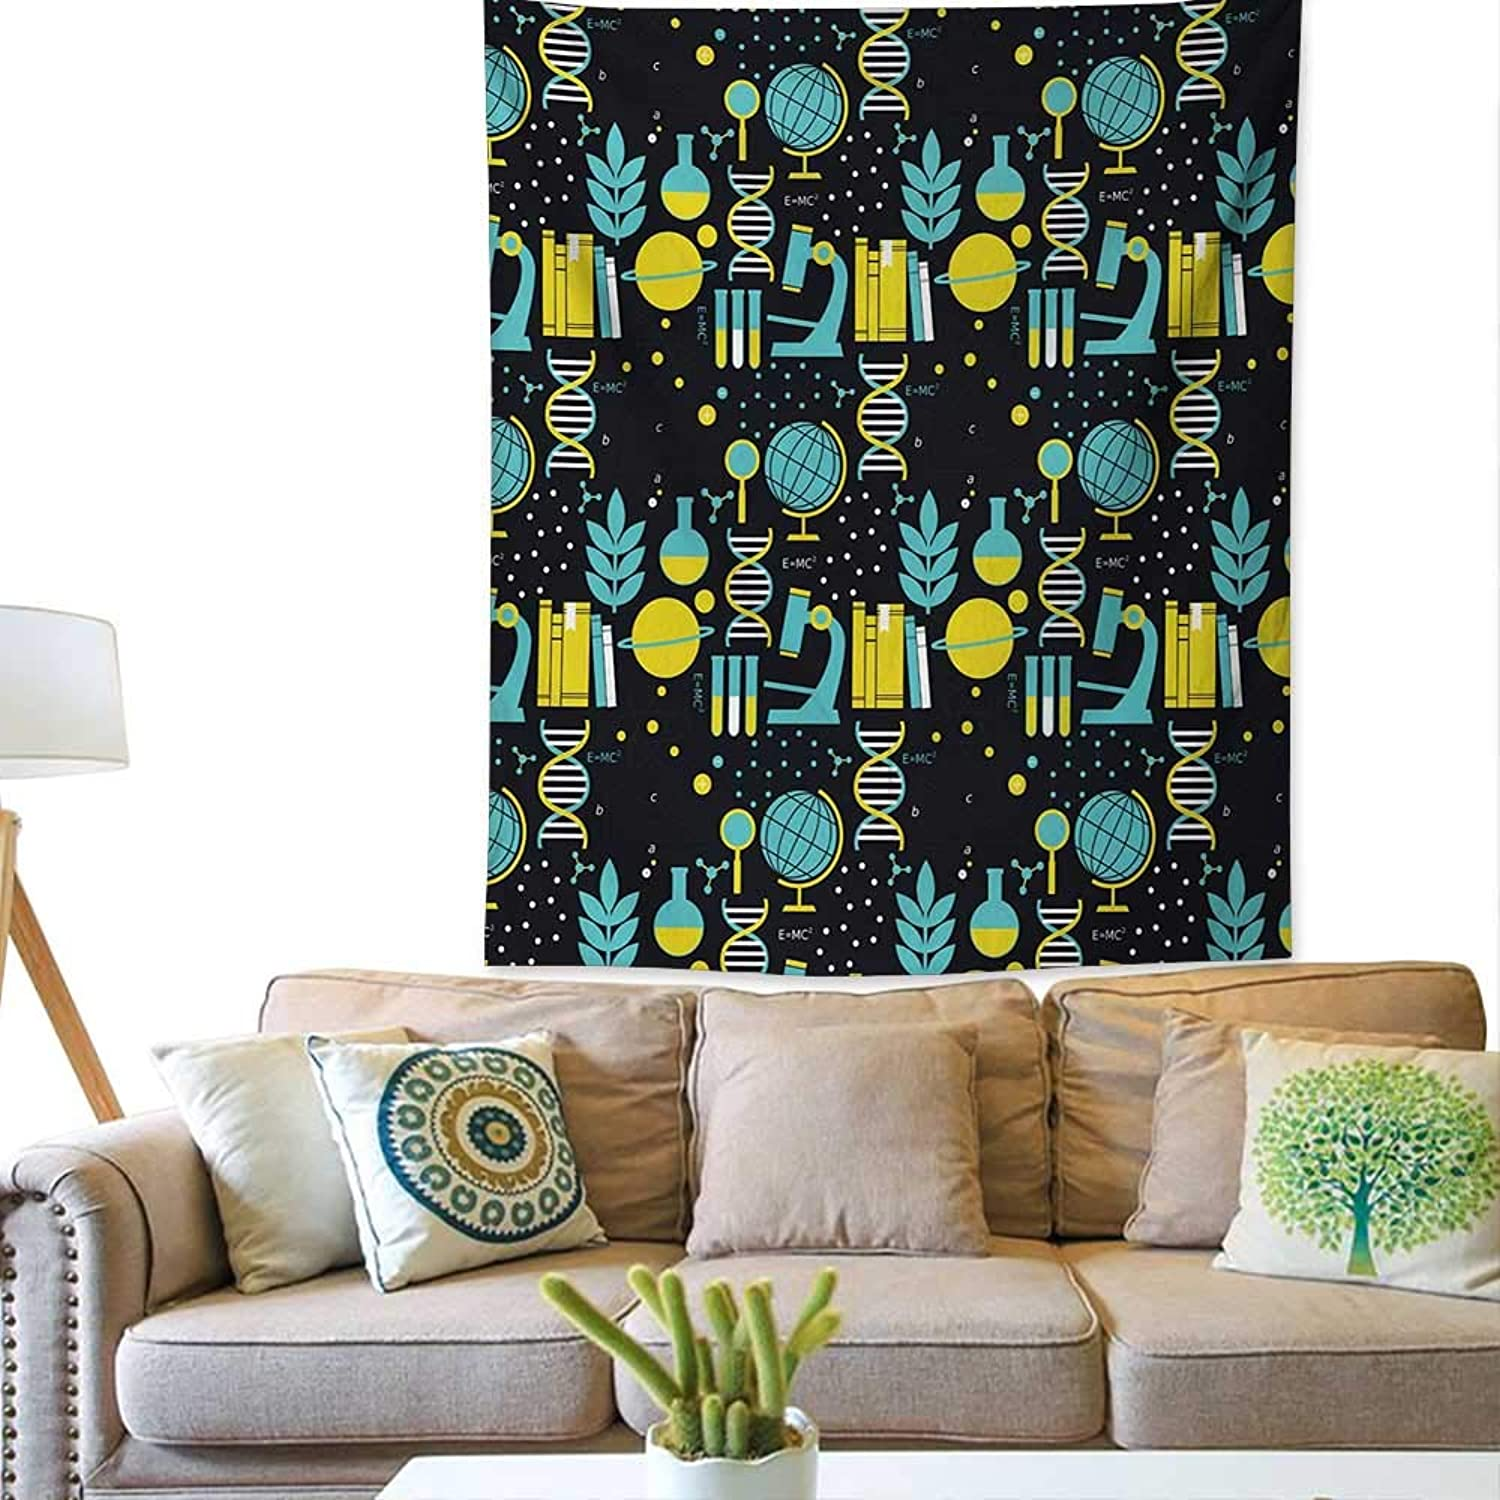 Bybyhome EducationWall tapestryScience Class Themed Biology Chemistry and Physics Predons Neutronscolorful Tapestry 57W x 74L INCHTurquoise Yellow Black